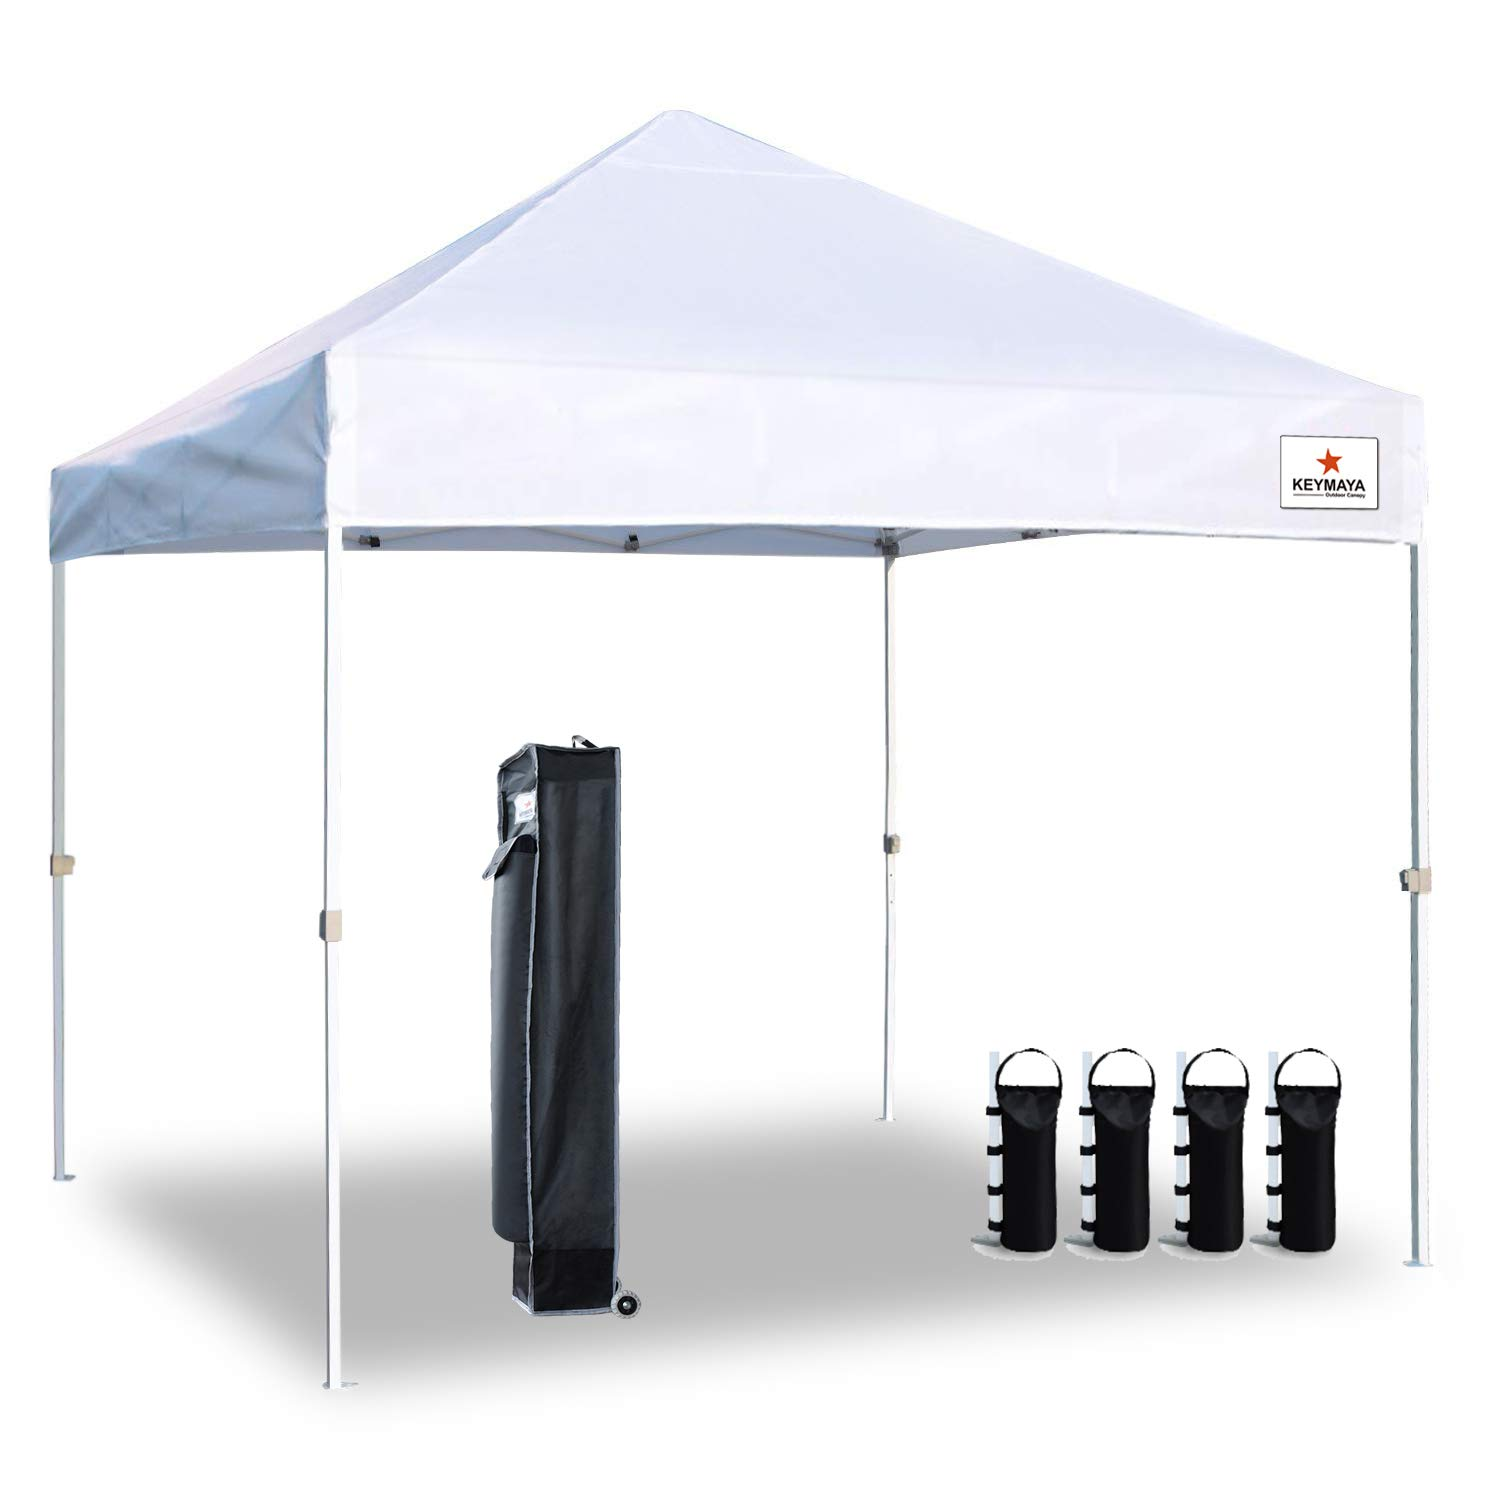 Keymaya 10'x10' Ez Commercial Instant Tent Heavy Duty Pop-up Canopy Shelter Bonus Weight Bag 4-pc Pack, 1# White